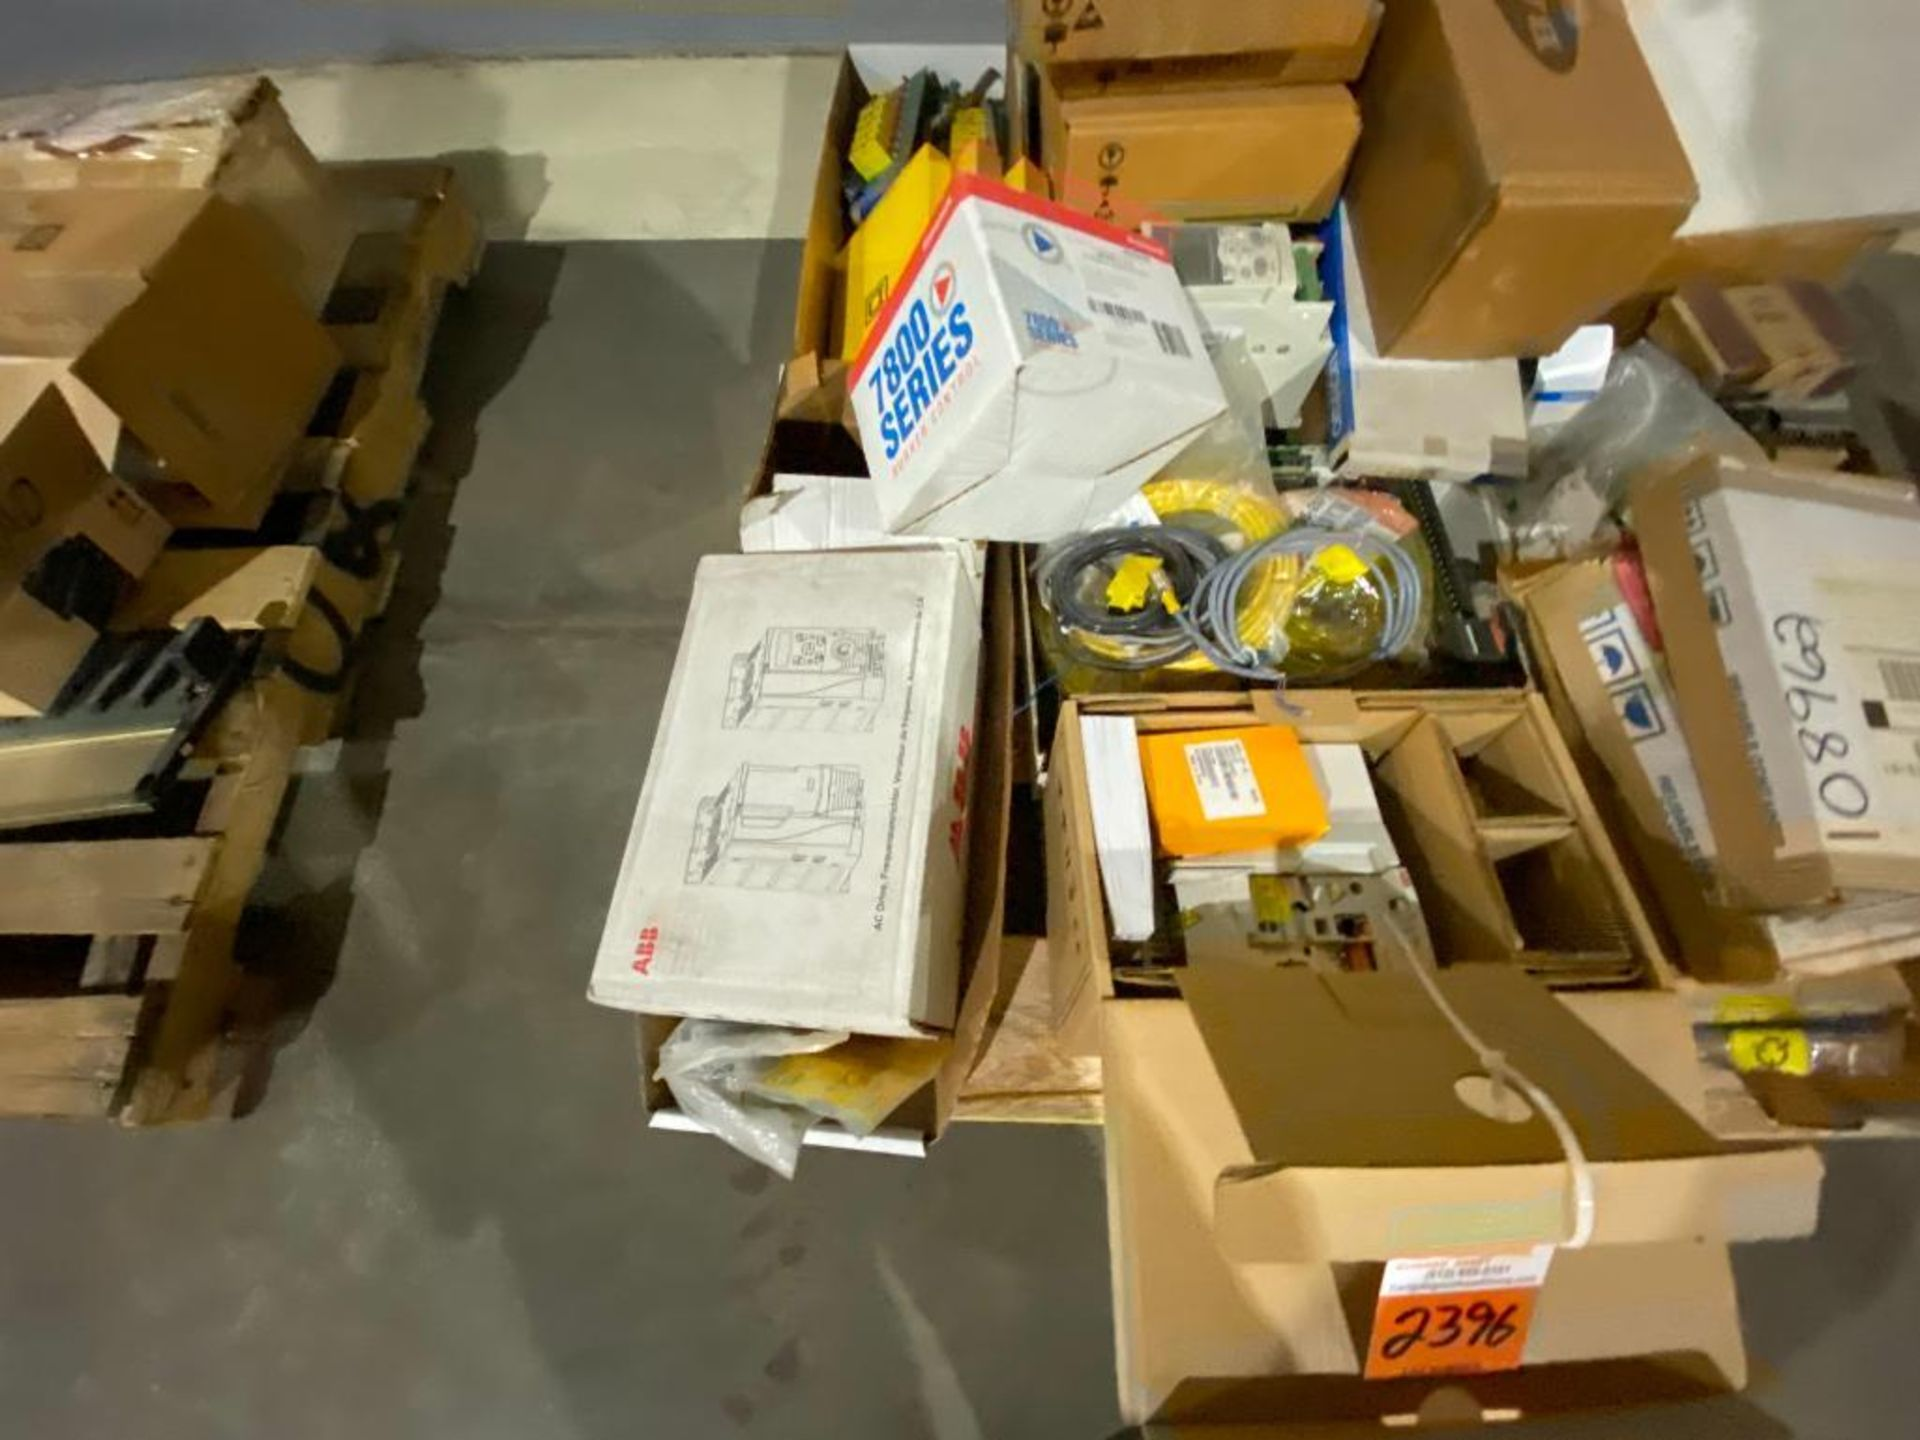 pallet of ABB parts, controllers, cabinets, and control boards - Image 3 of 8